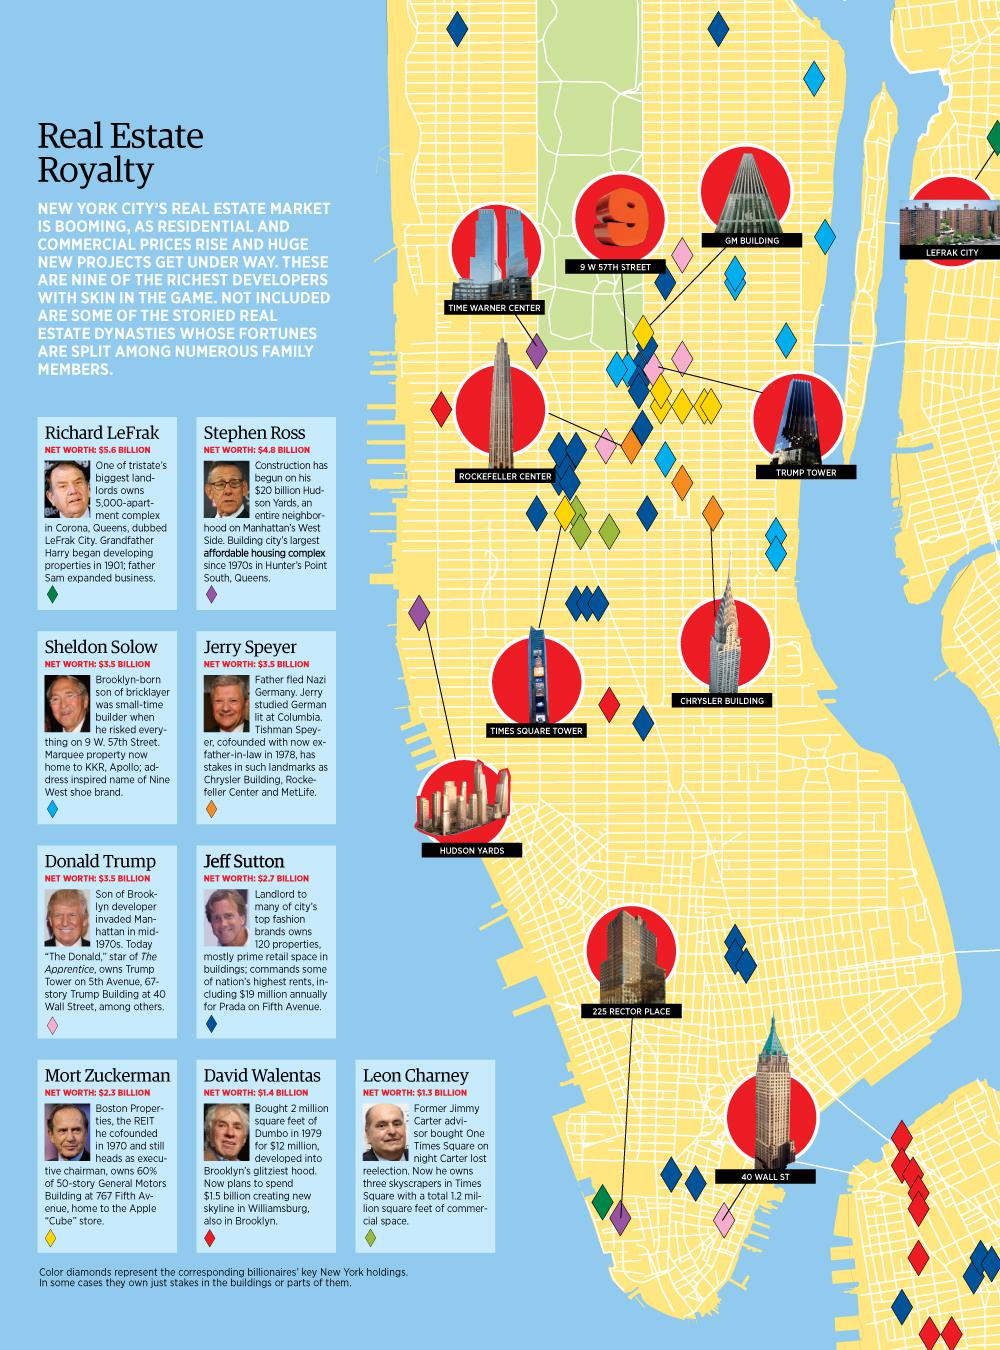 Real Estate Royalty: Mapping New York City's Billionaire Landlords